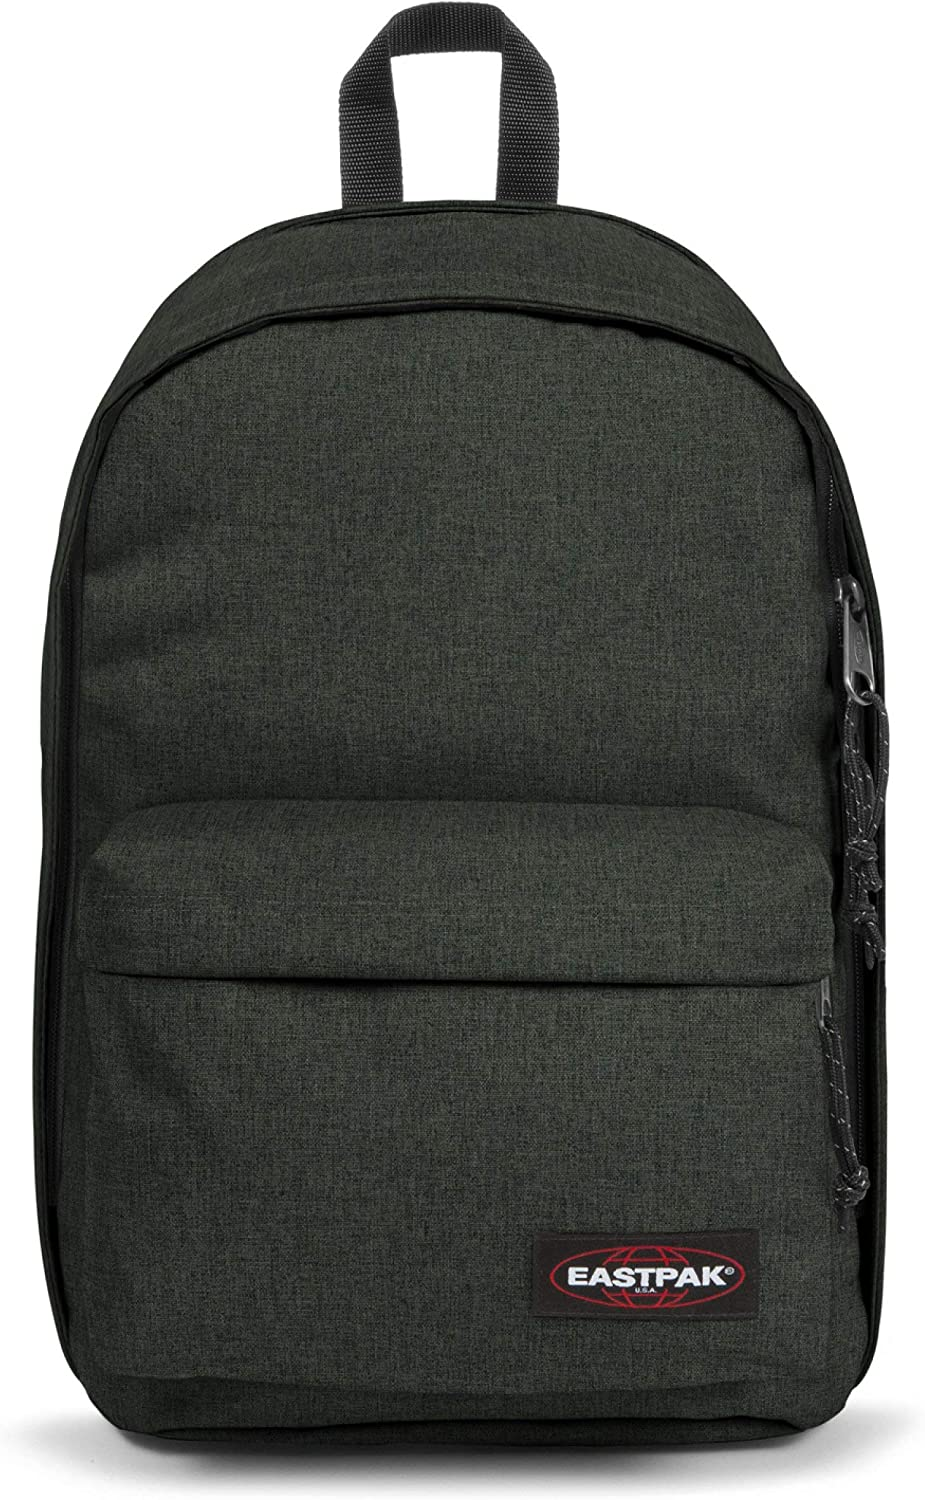 Eastpak Women's Back to Work Backpack, Crafty Moss, Green, One Size